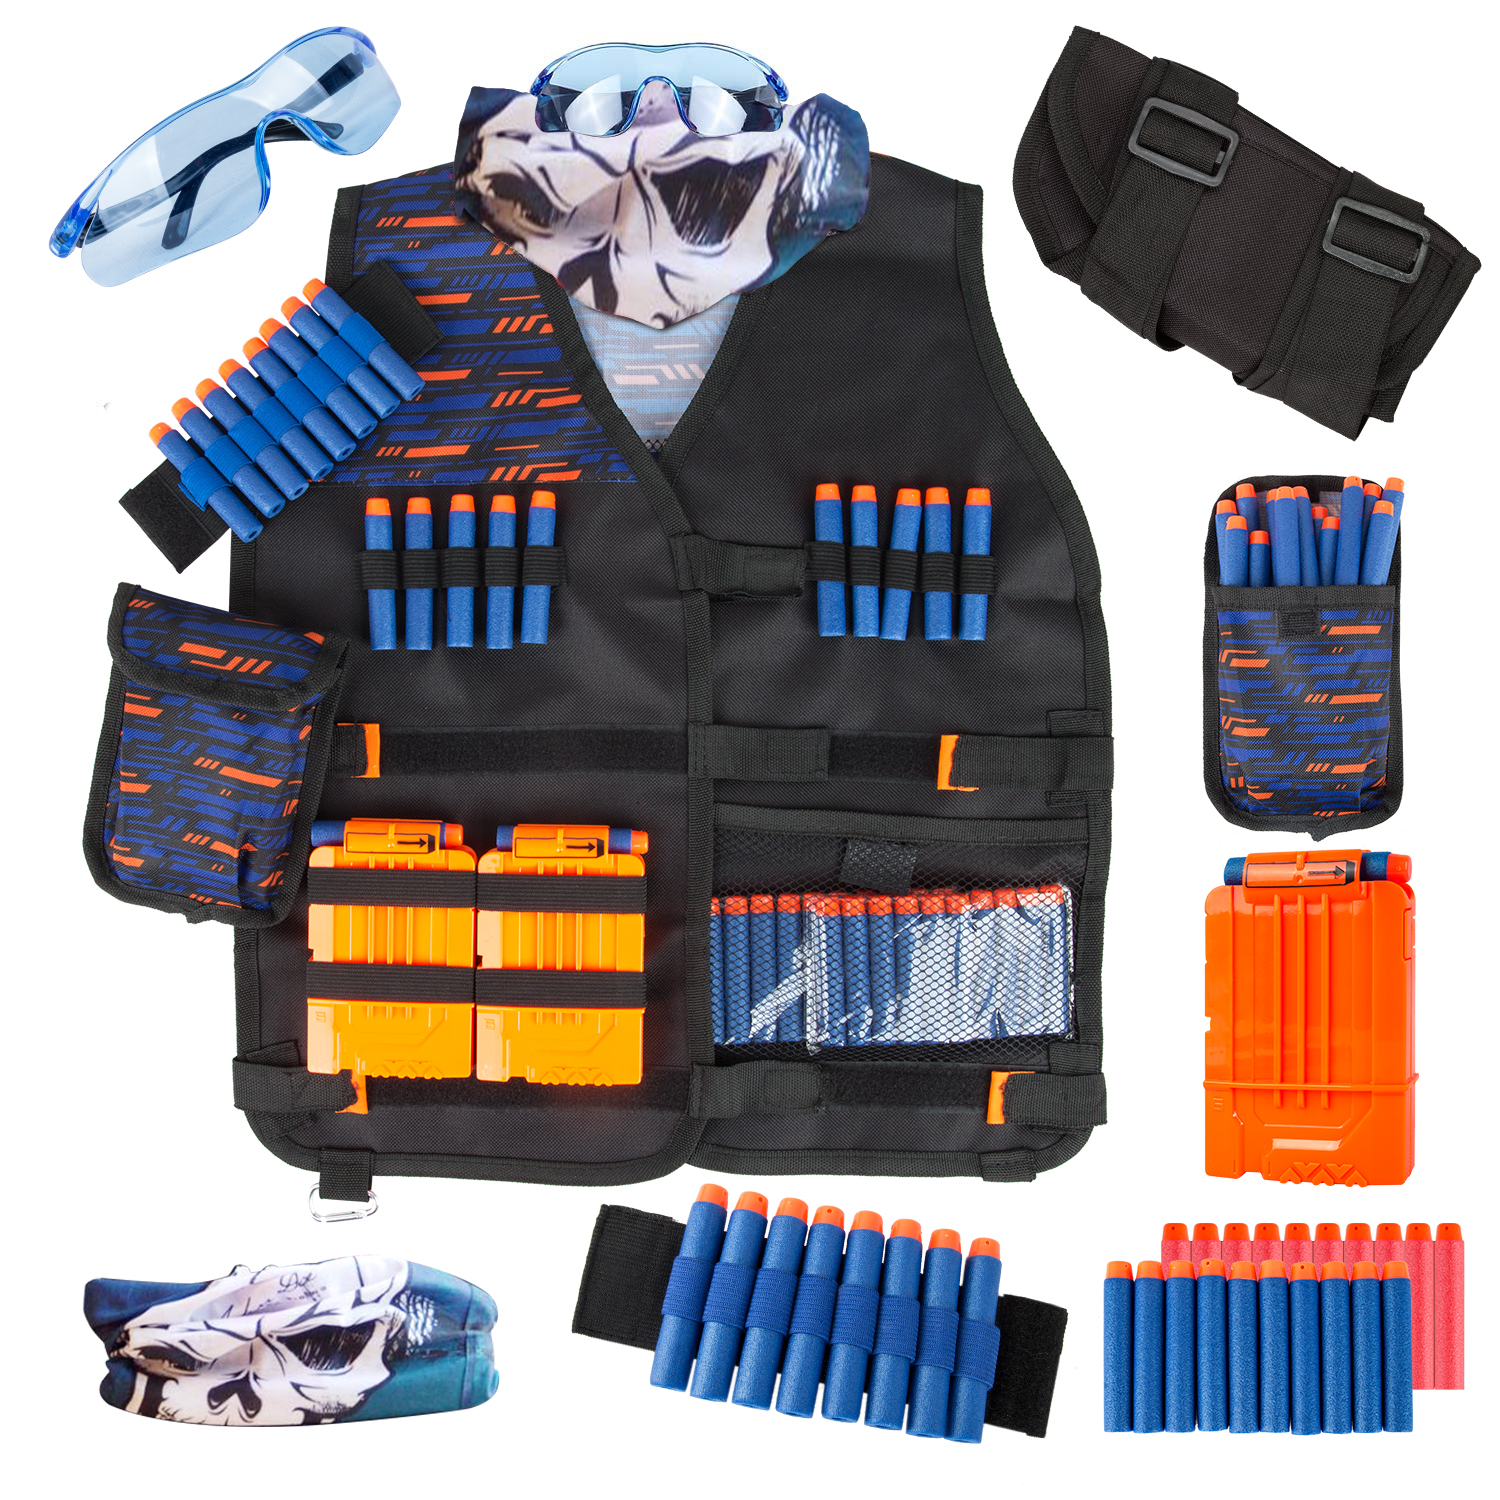 Toy Suit For Nerf Gun Toy Tactical Equipment Gun Shuttle Bullet Magazine Accessories Bullet Clip Compatible Nerf Gun Xmas Gift Toy Guns